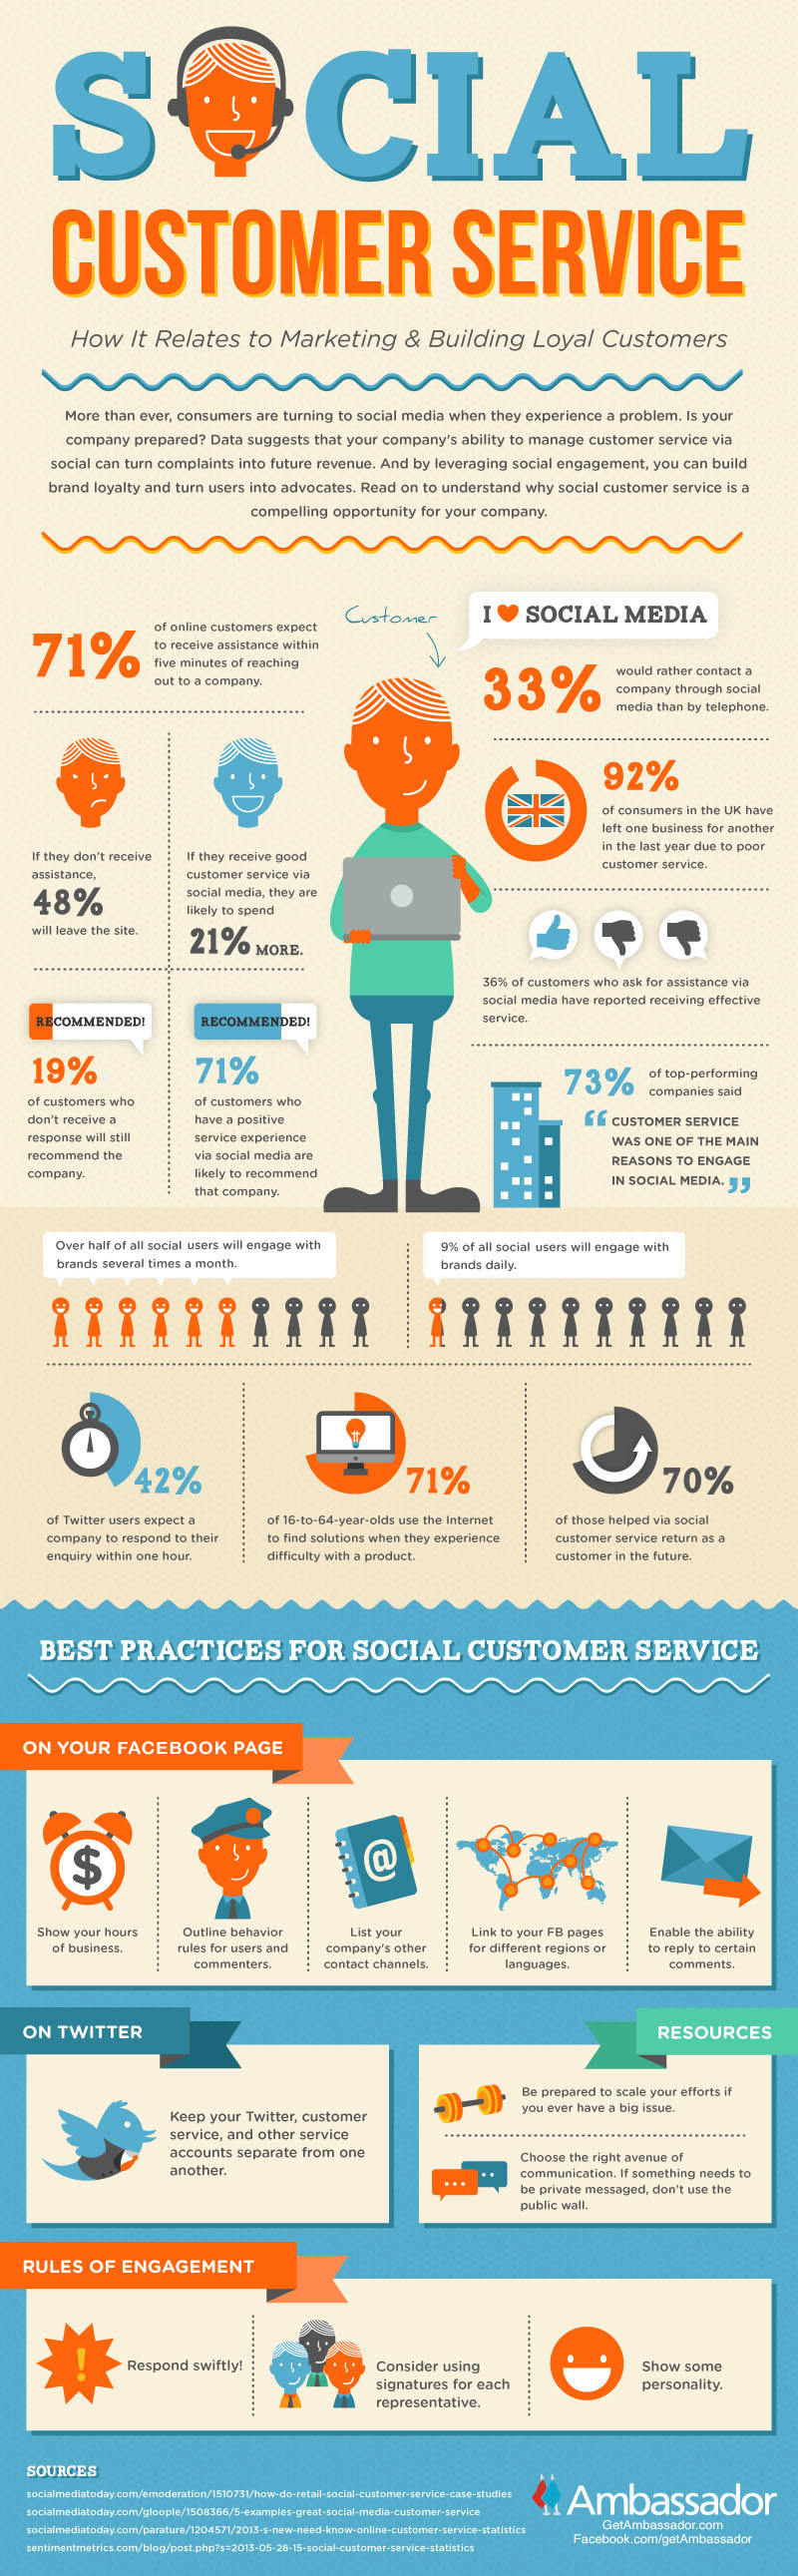 14 Reasons To Do Social Customer Service [infographic]